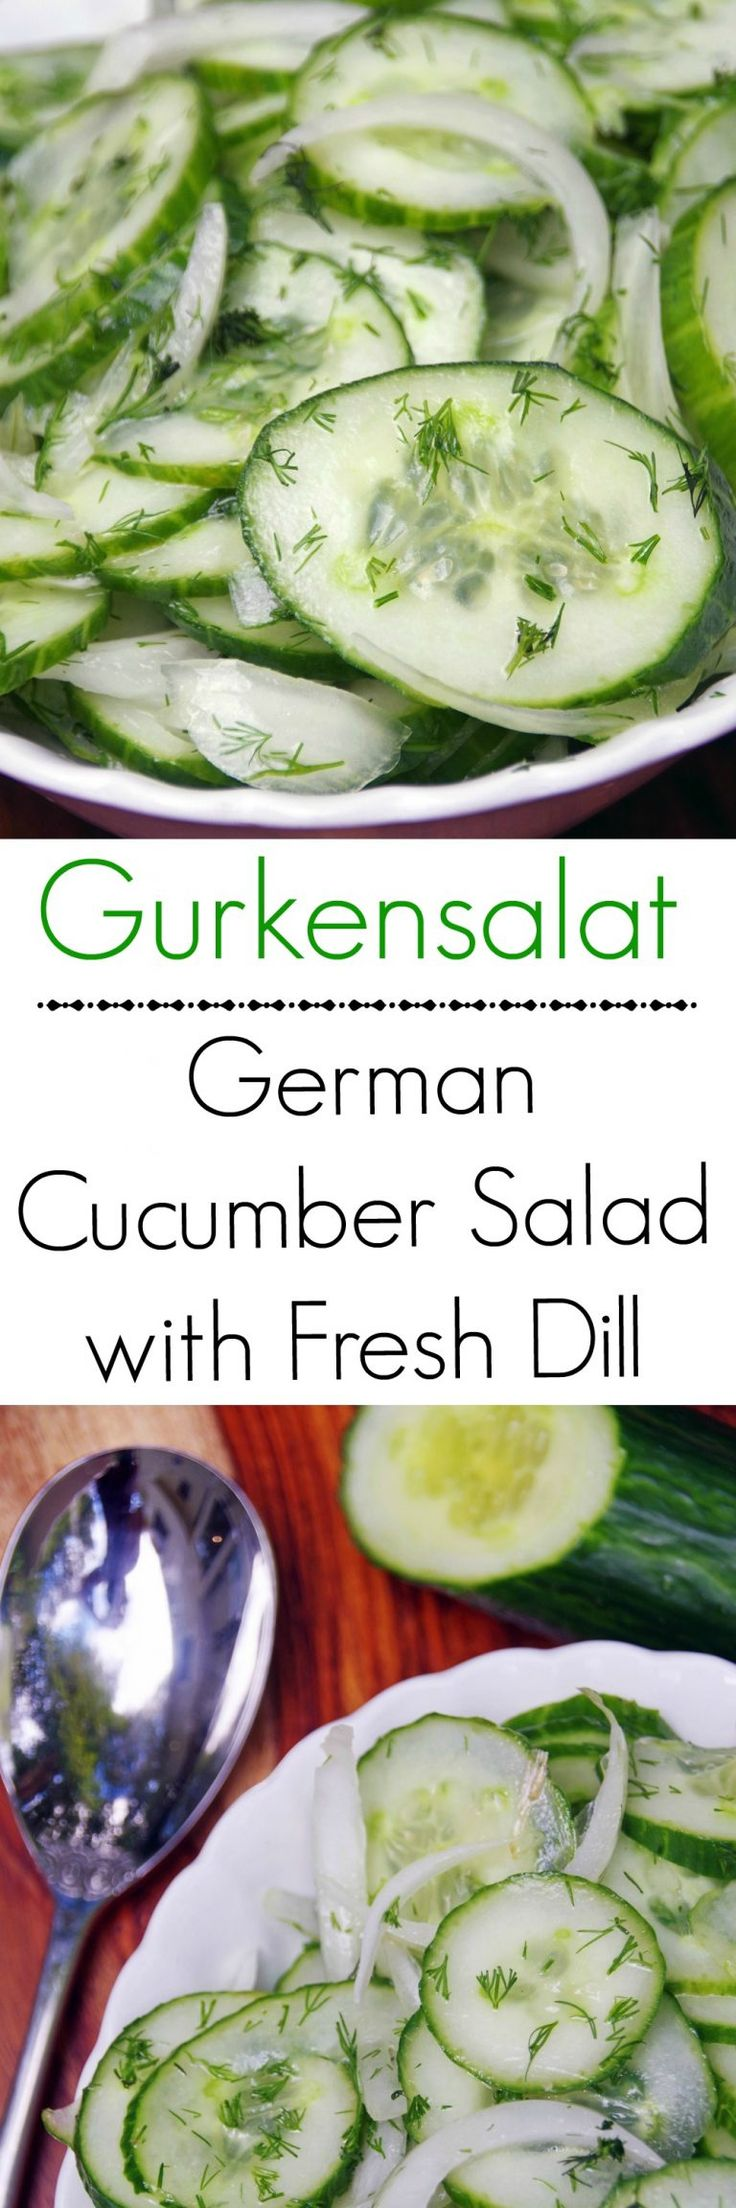 Gurkensalat recipe: A German Cucumber Salad Recipe with Fresh Dill